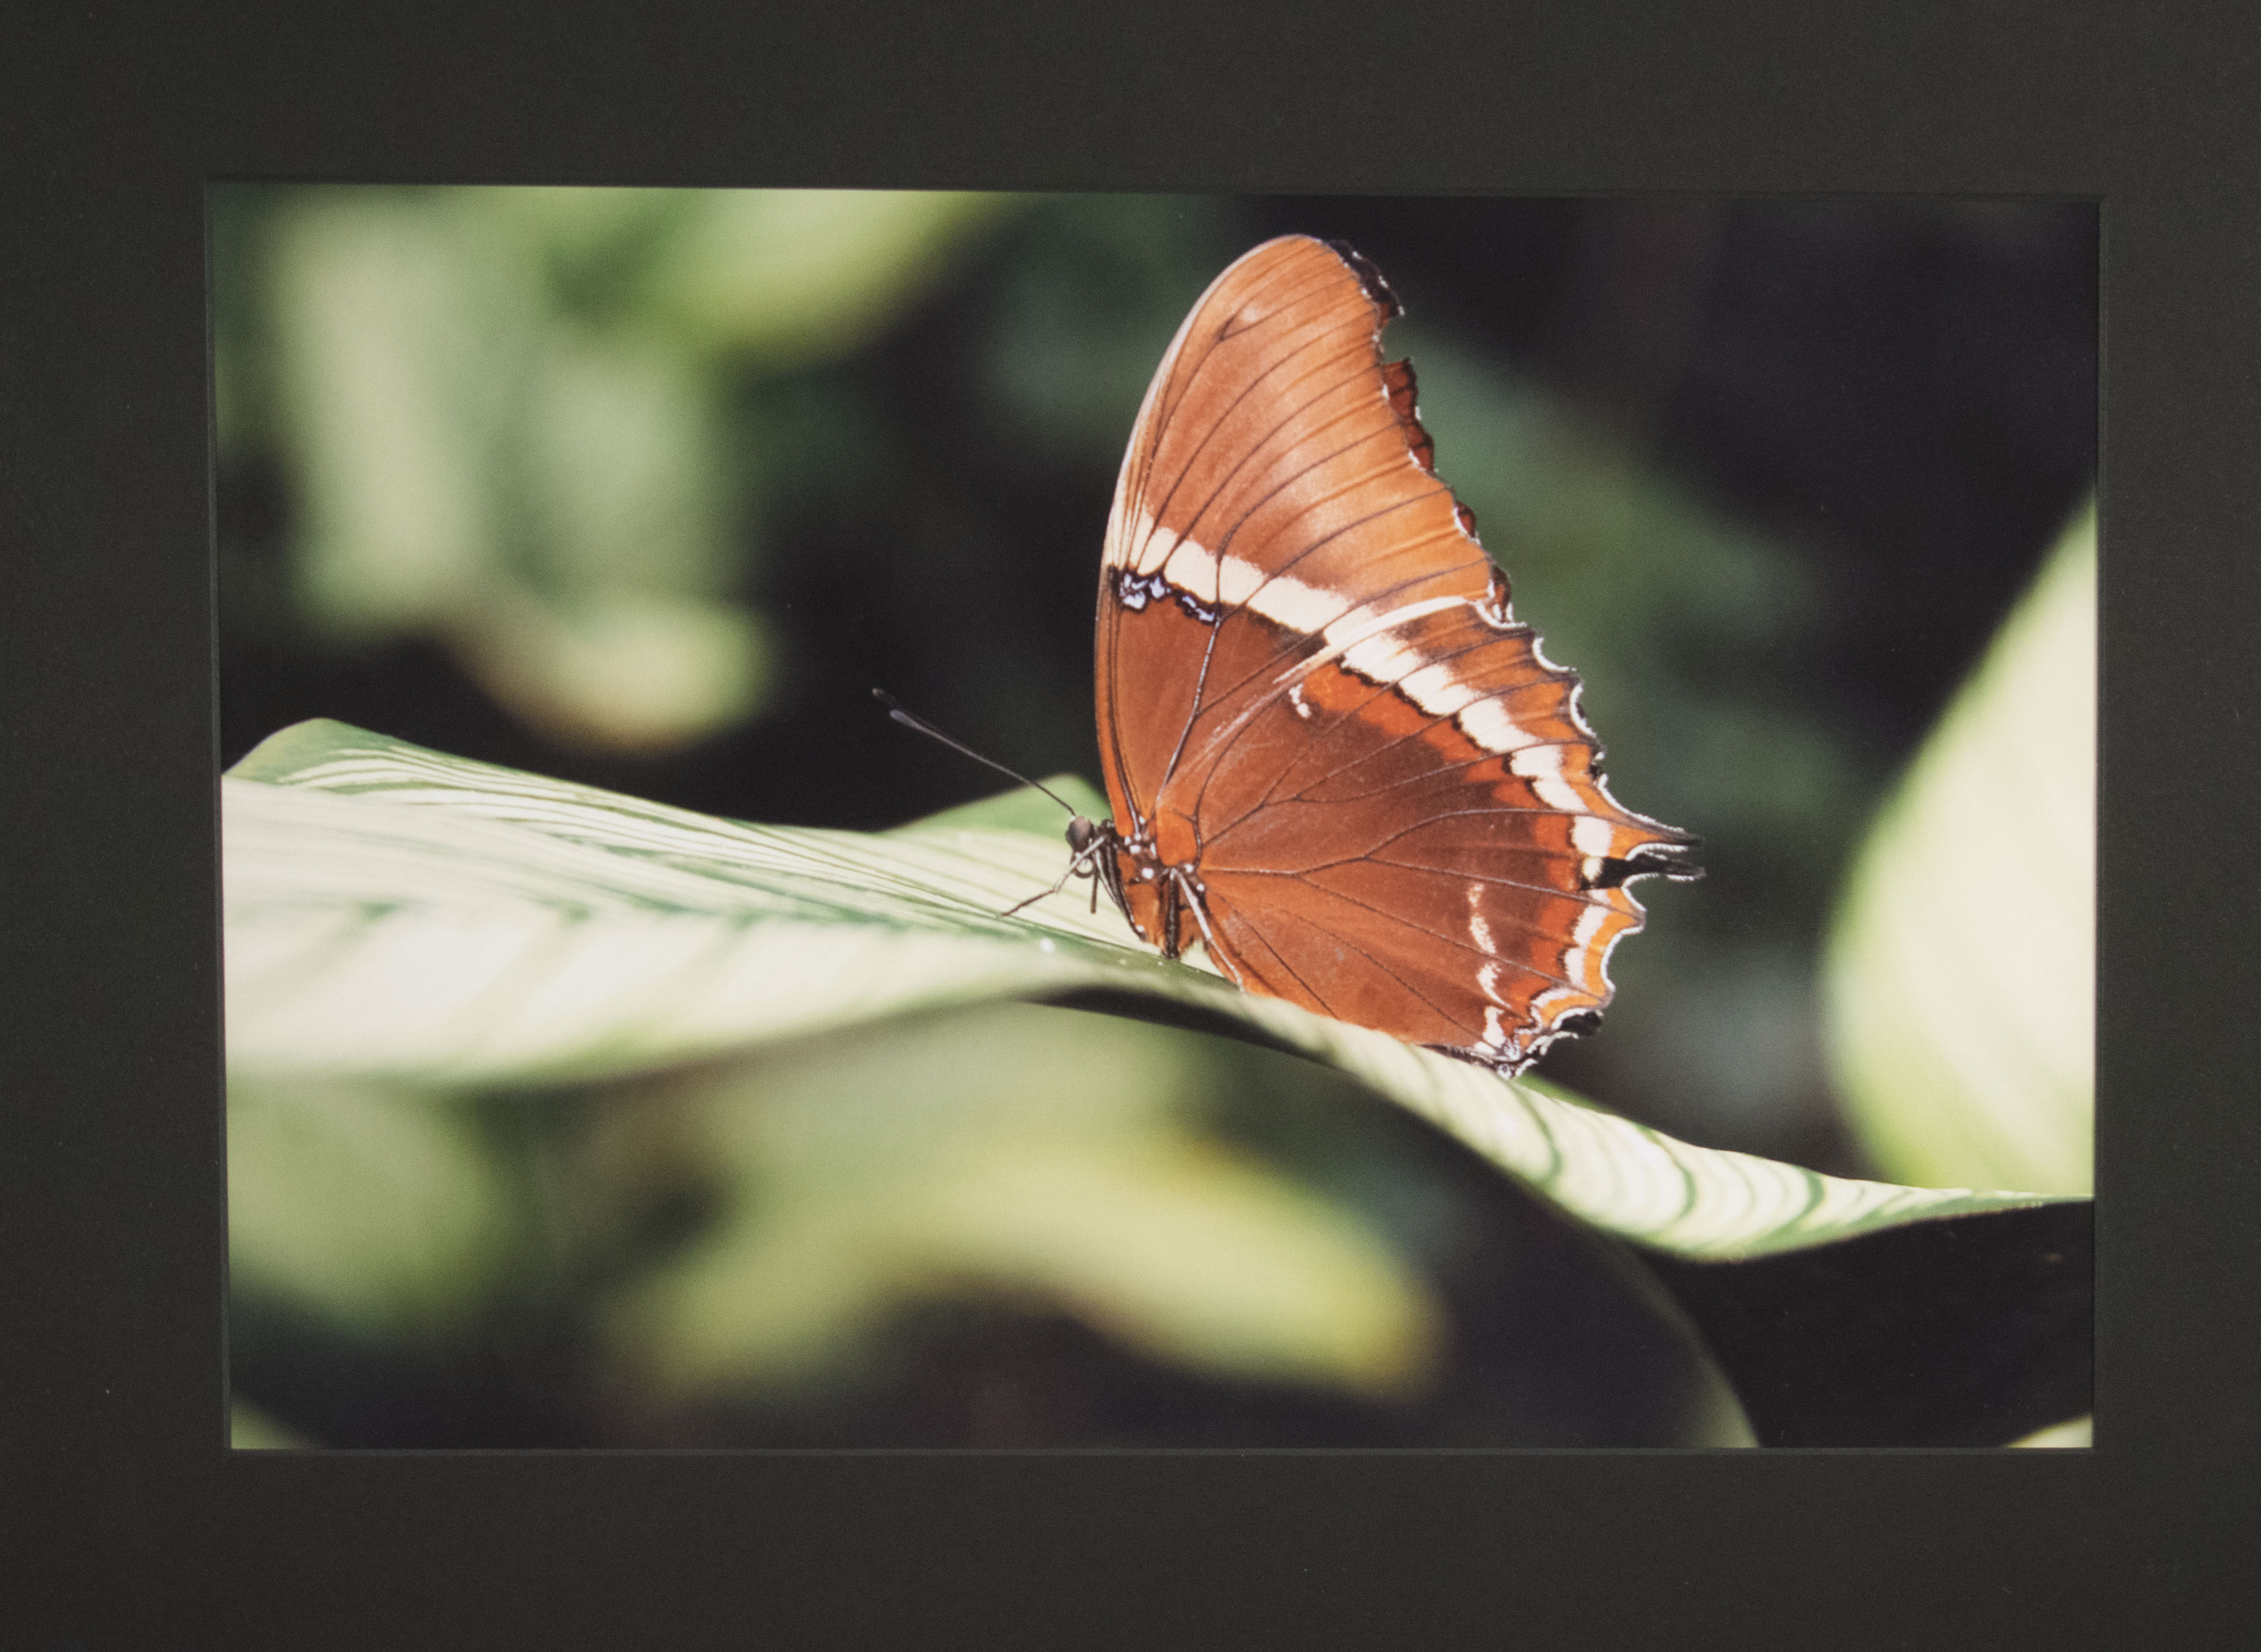 photograph of an orange butterfly on a leaf